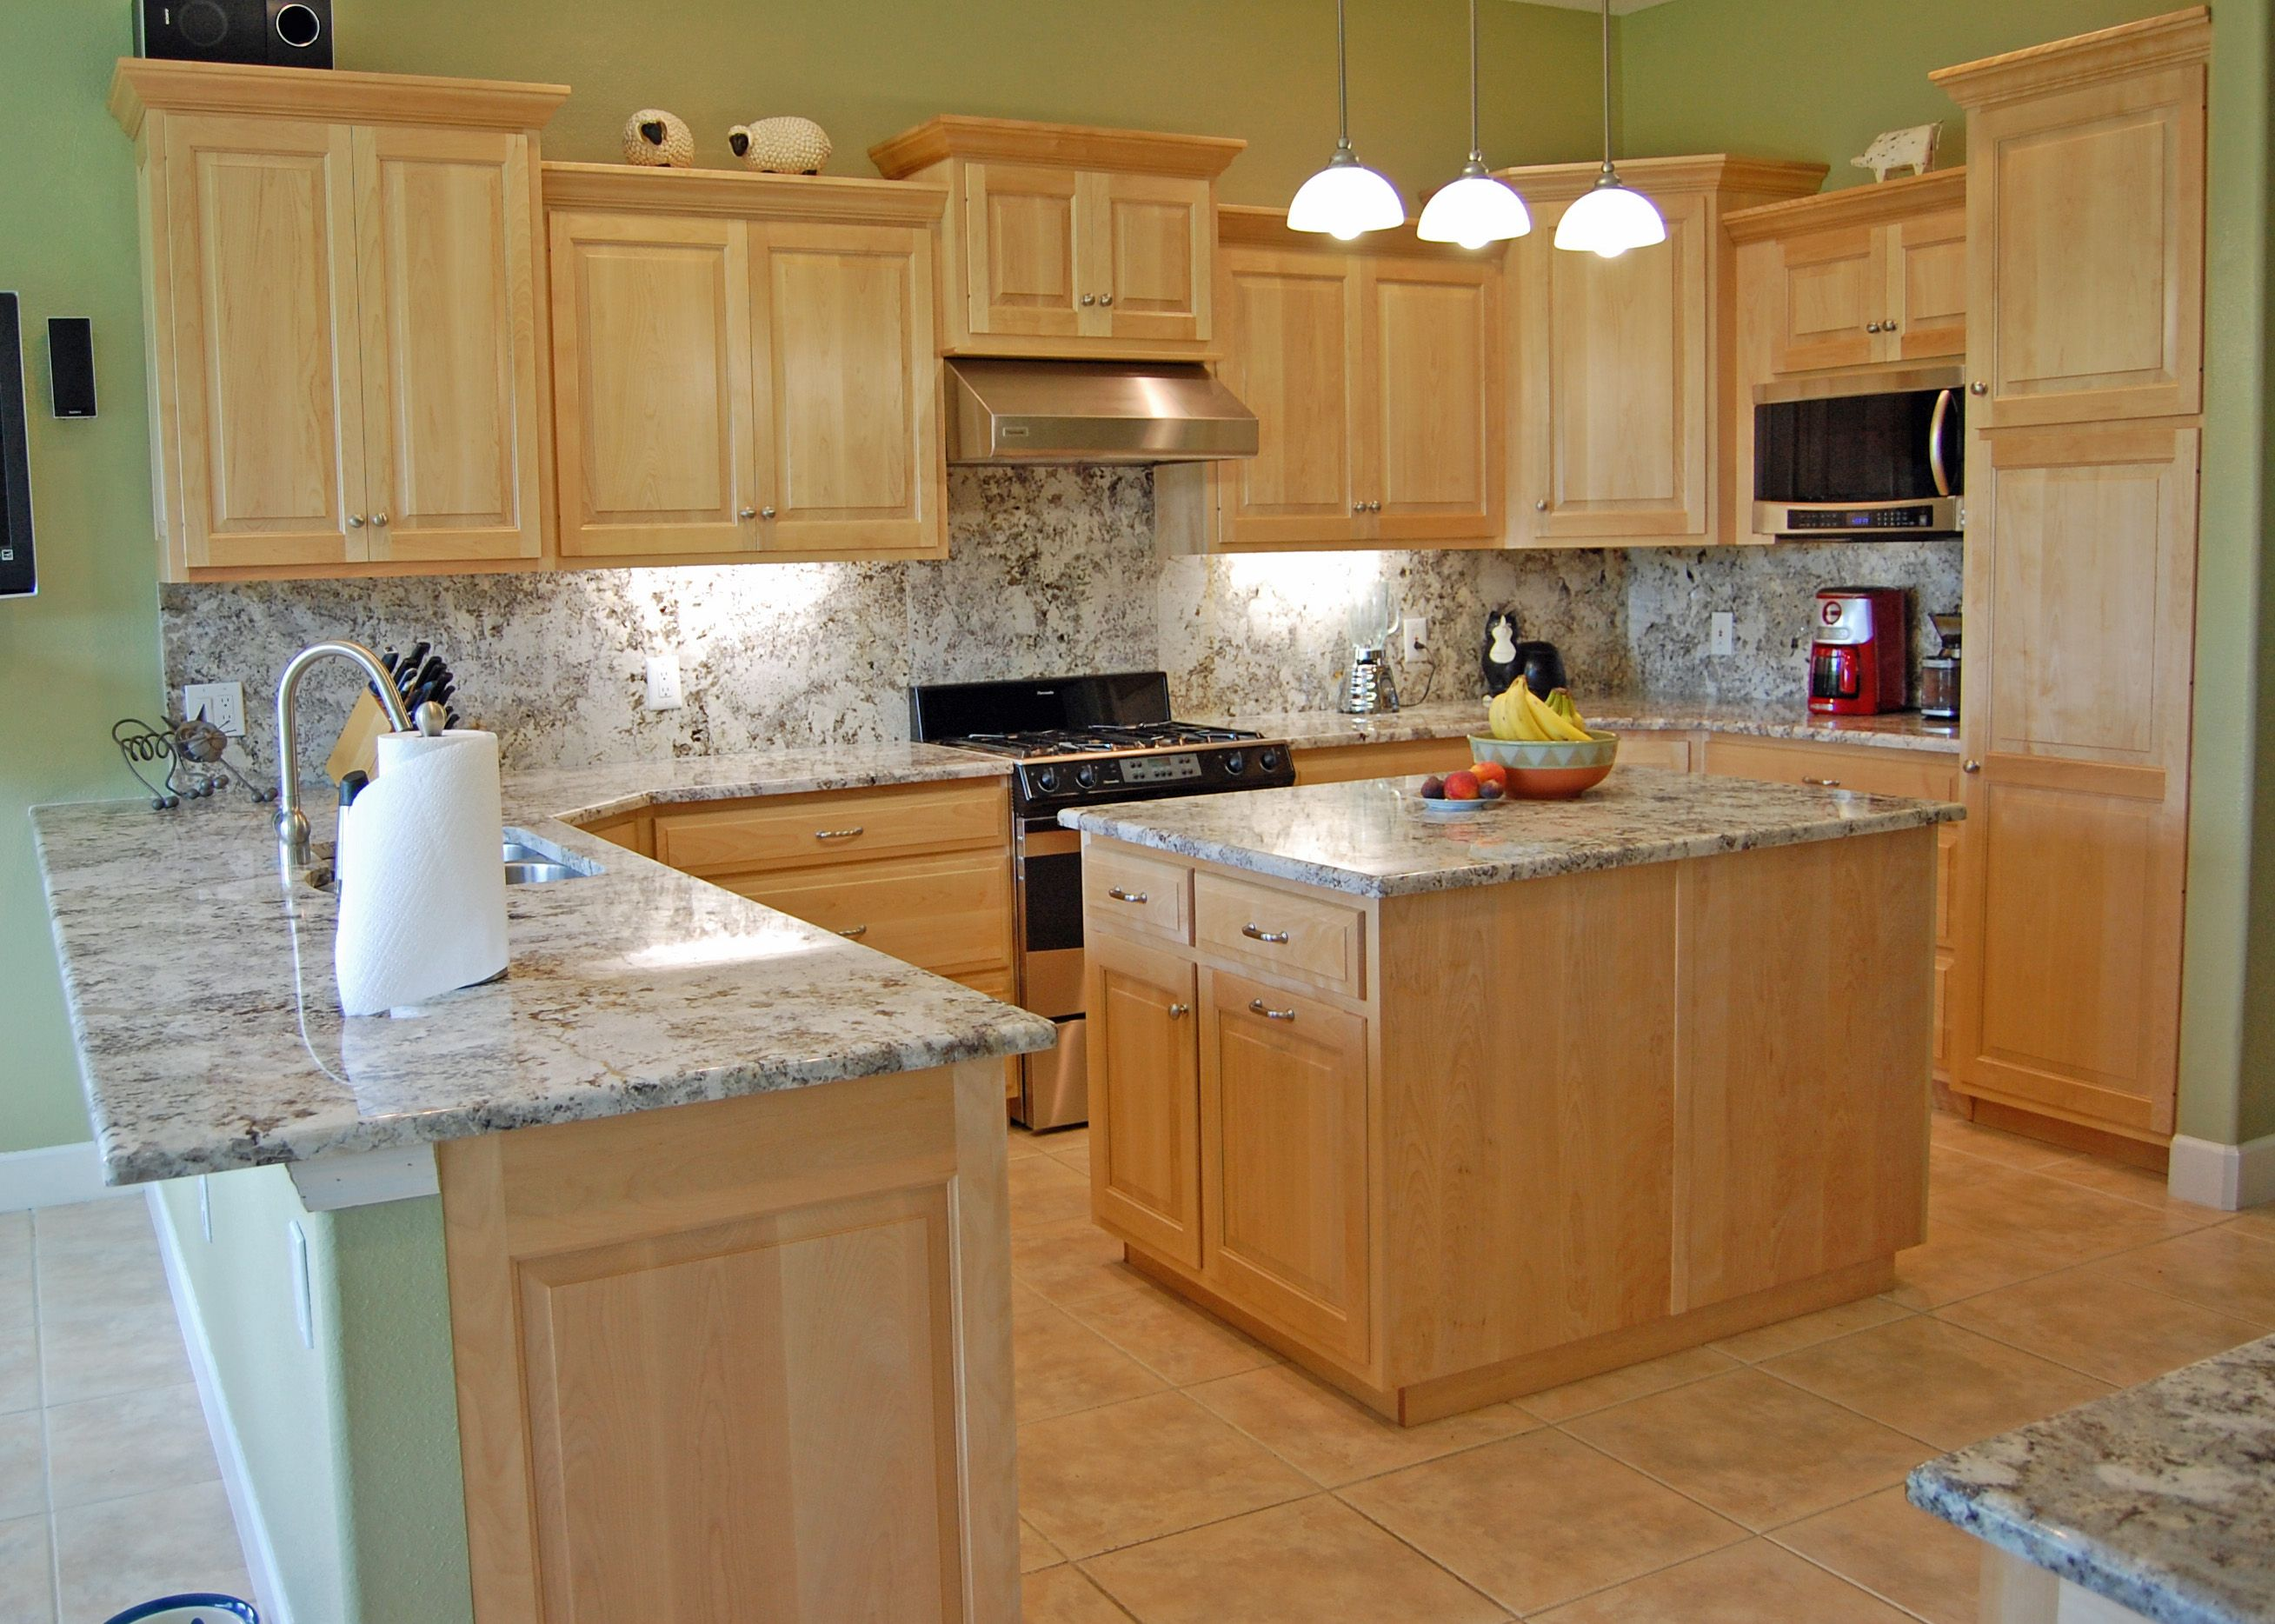 White Maple Kitchen Cabinets. Available in any setup/size